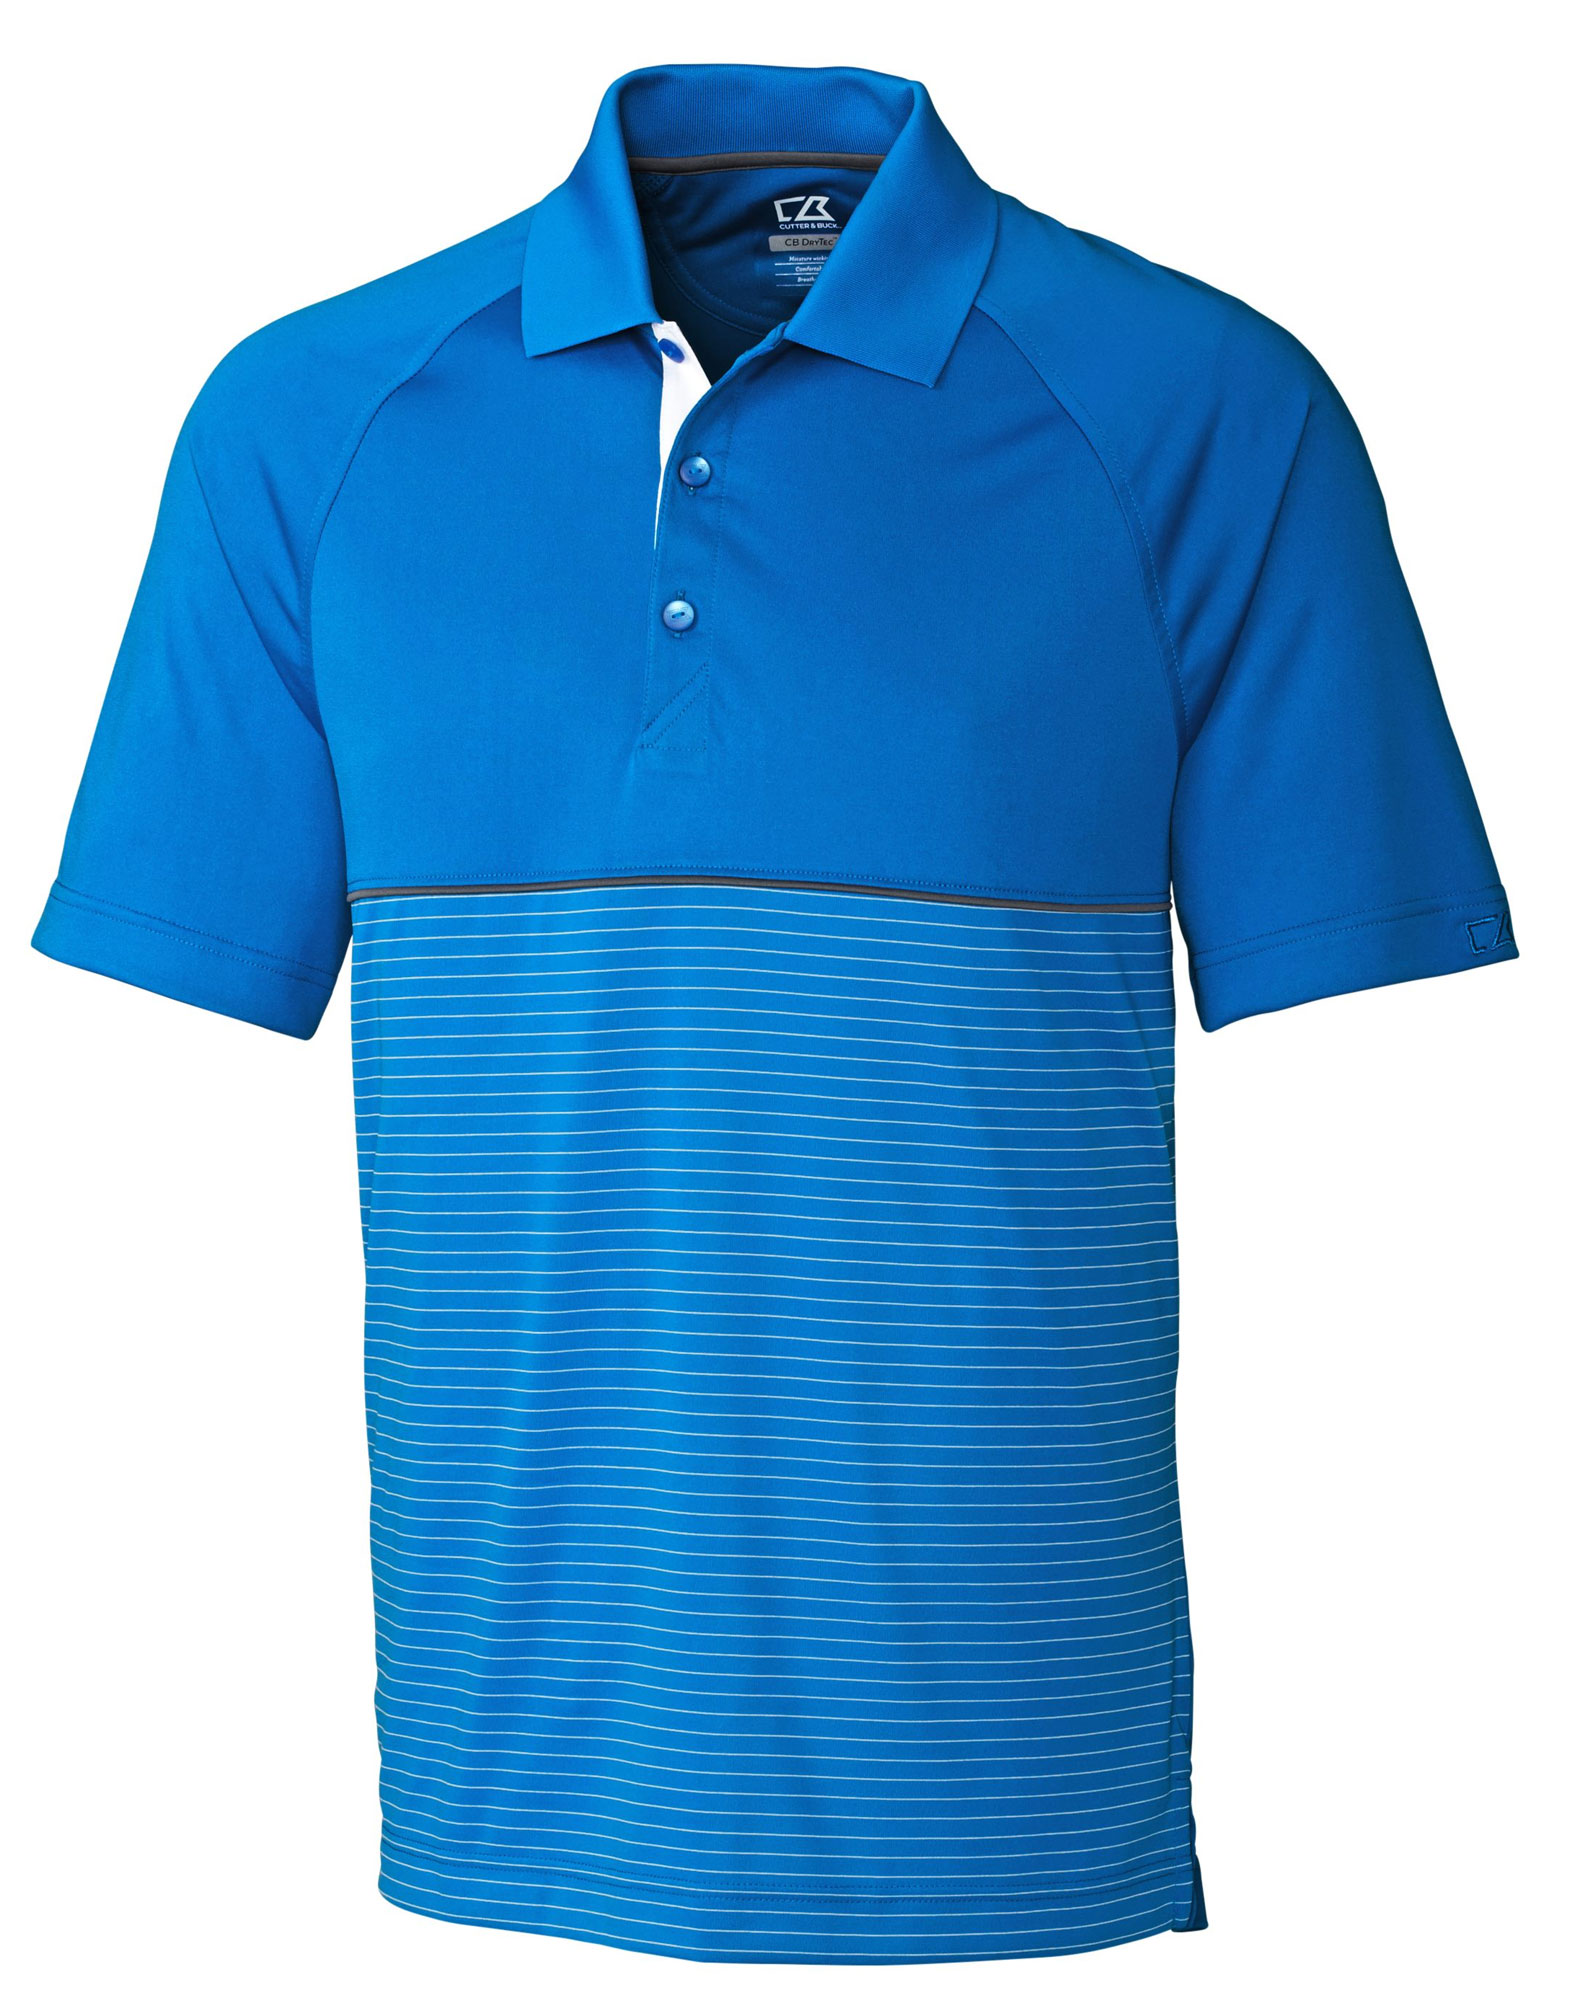 Mens CB DryTec� Junction Stripe Hybrid Polo